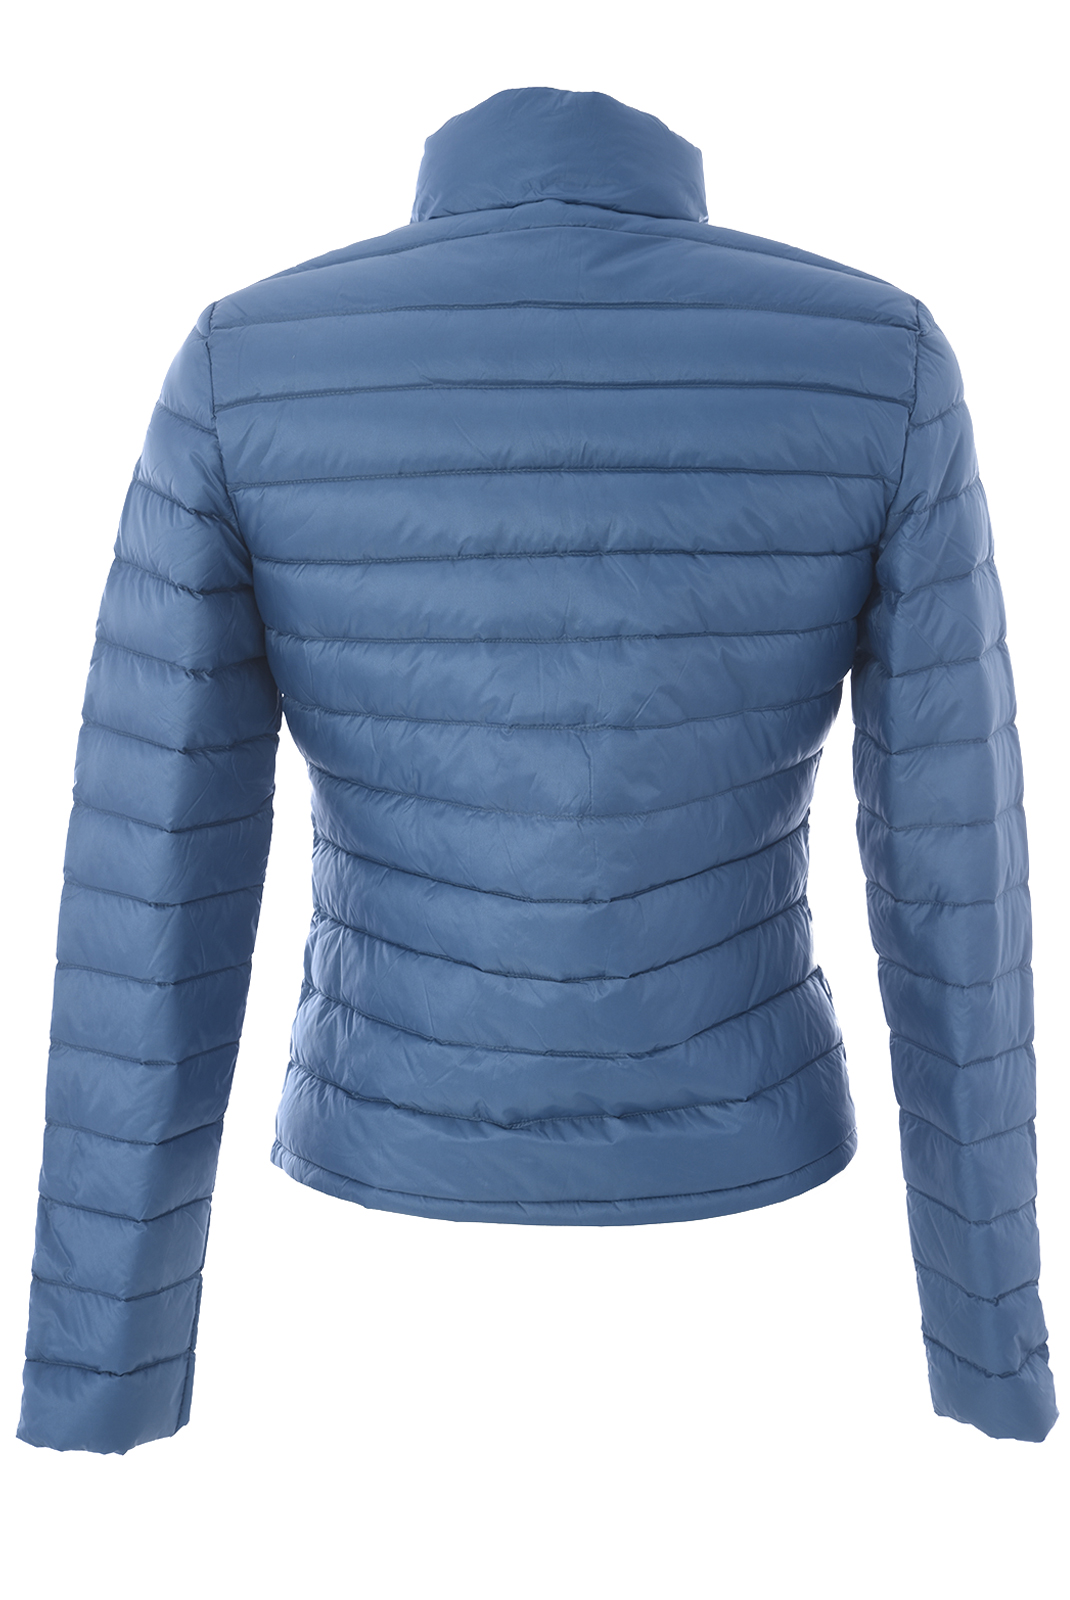 Blouson  Just over the top SONIA 110  BLEU CANARD